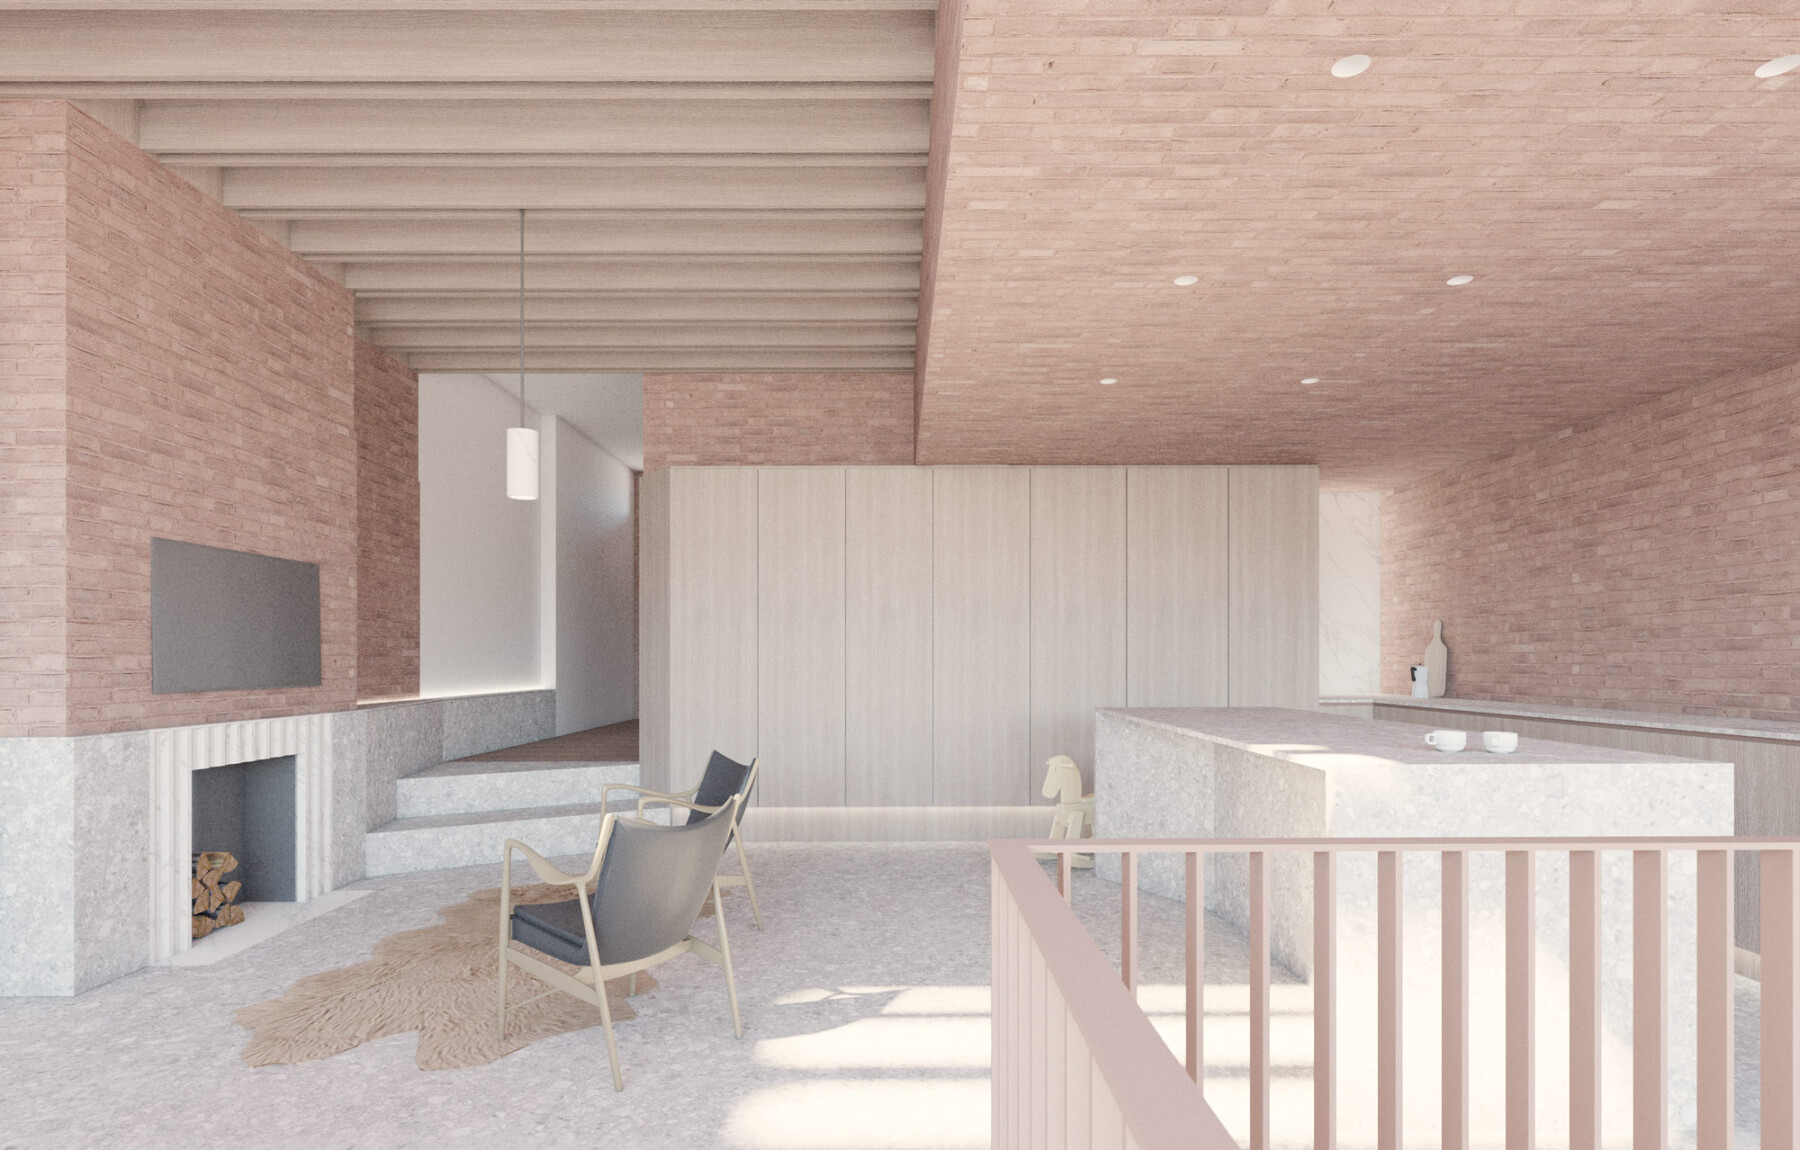 Highgate basement extension in brick by Architecture for London in Highgate